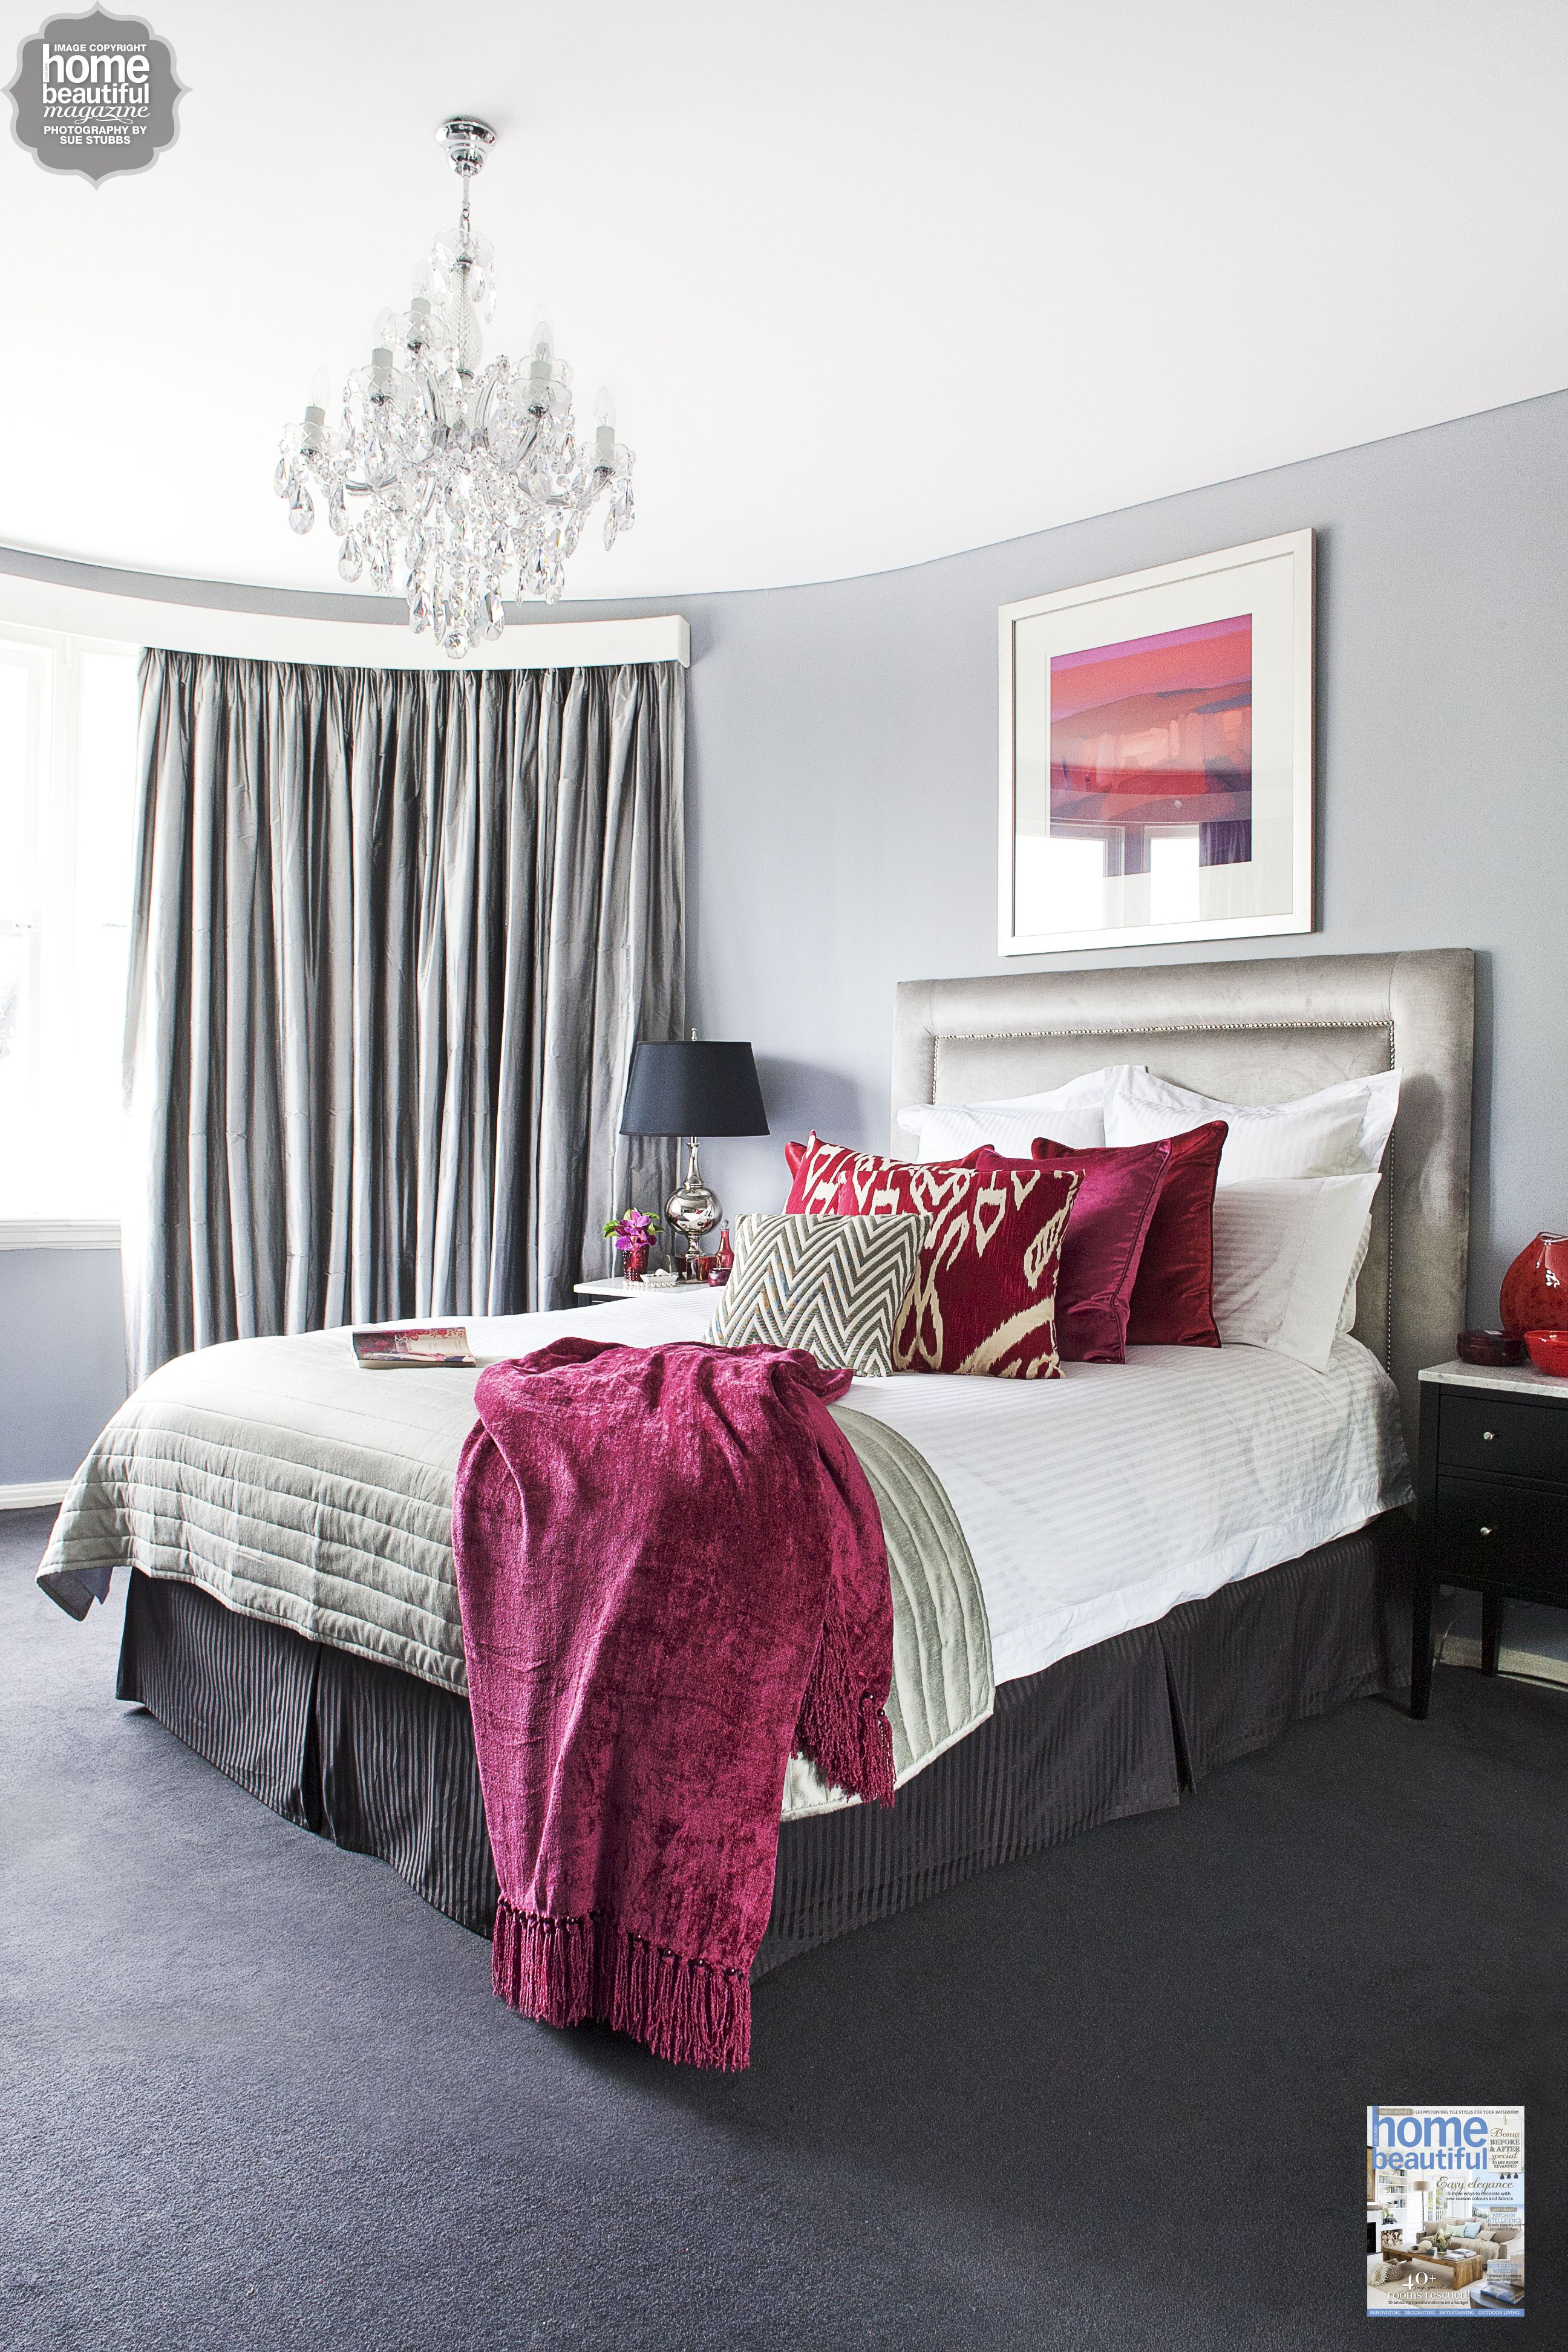 Rich Burgundy Touches Add Glamour To This Sydney Bedroom Grey